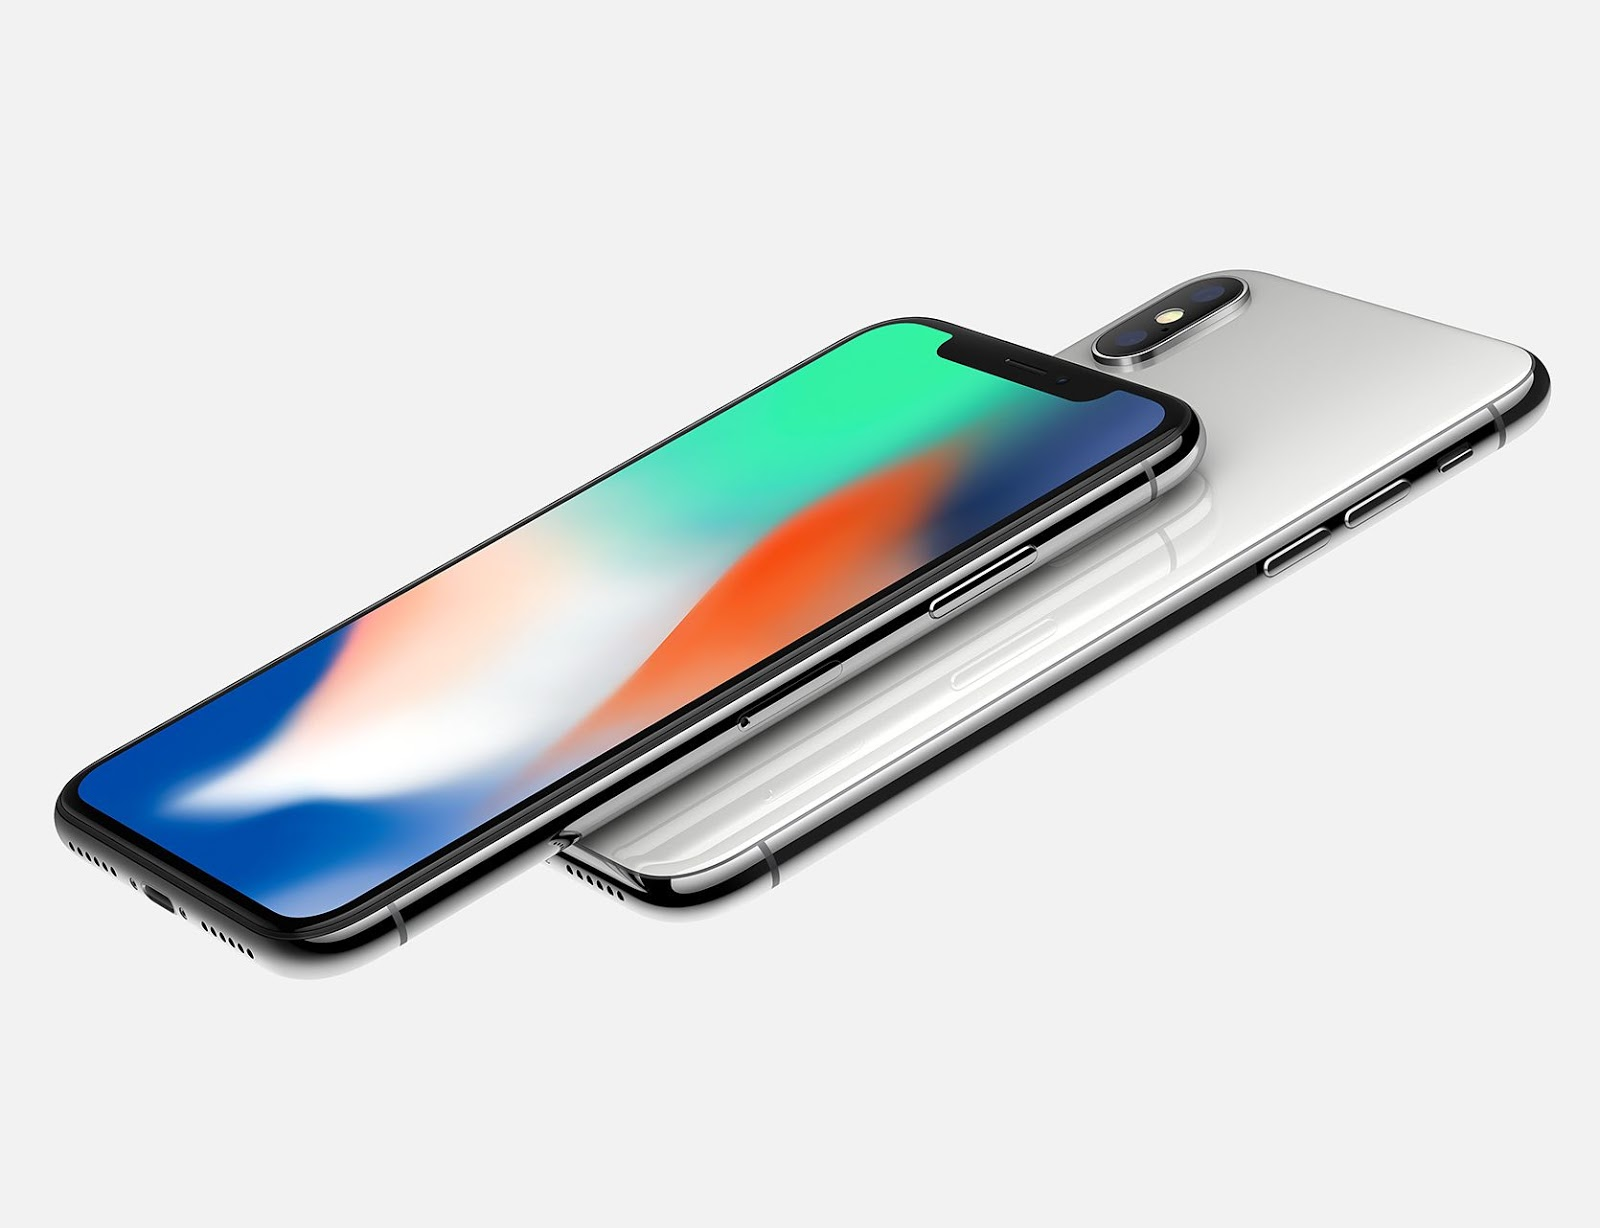 Apple iPhone X  launched its 2017 iPhone models Buy in India Than the US